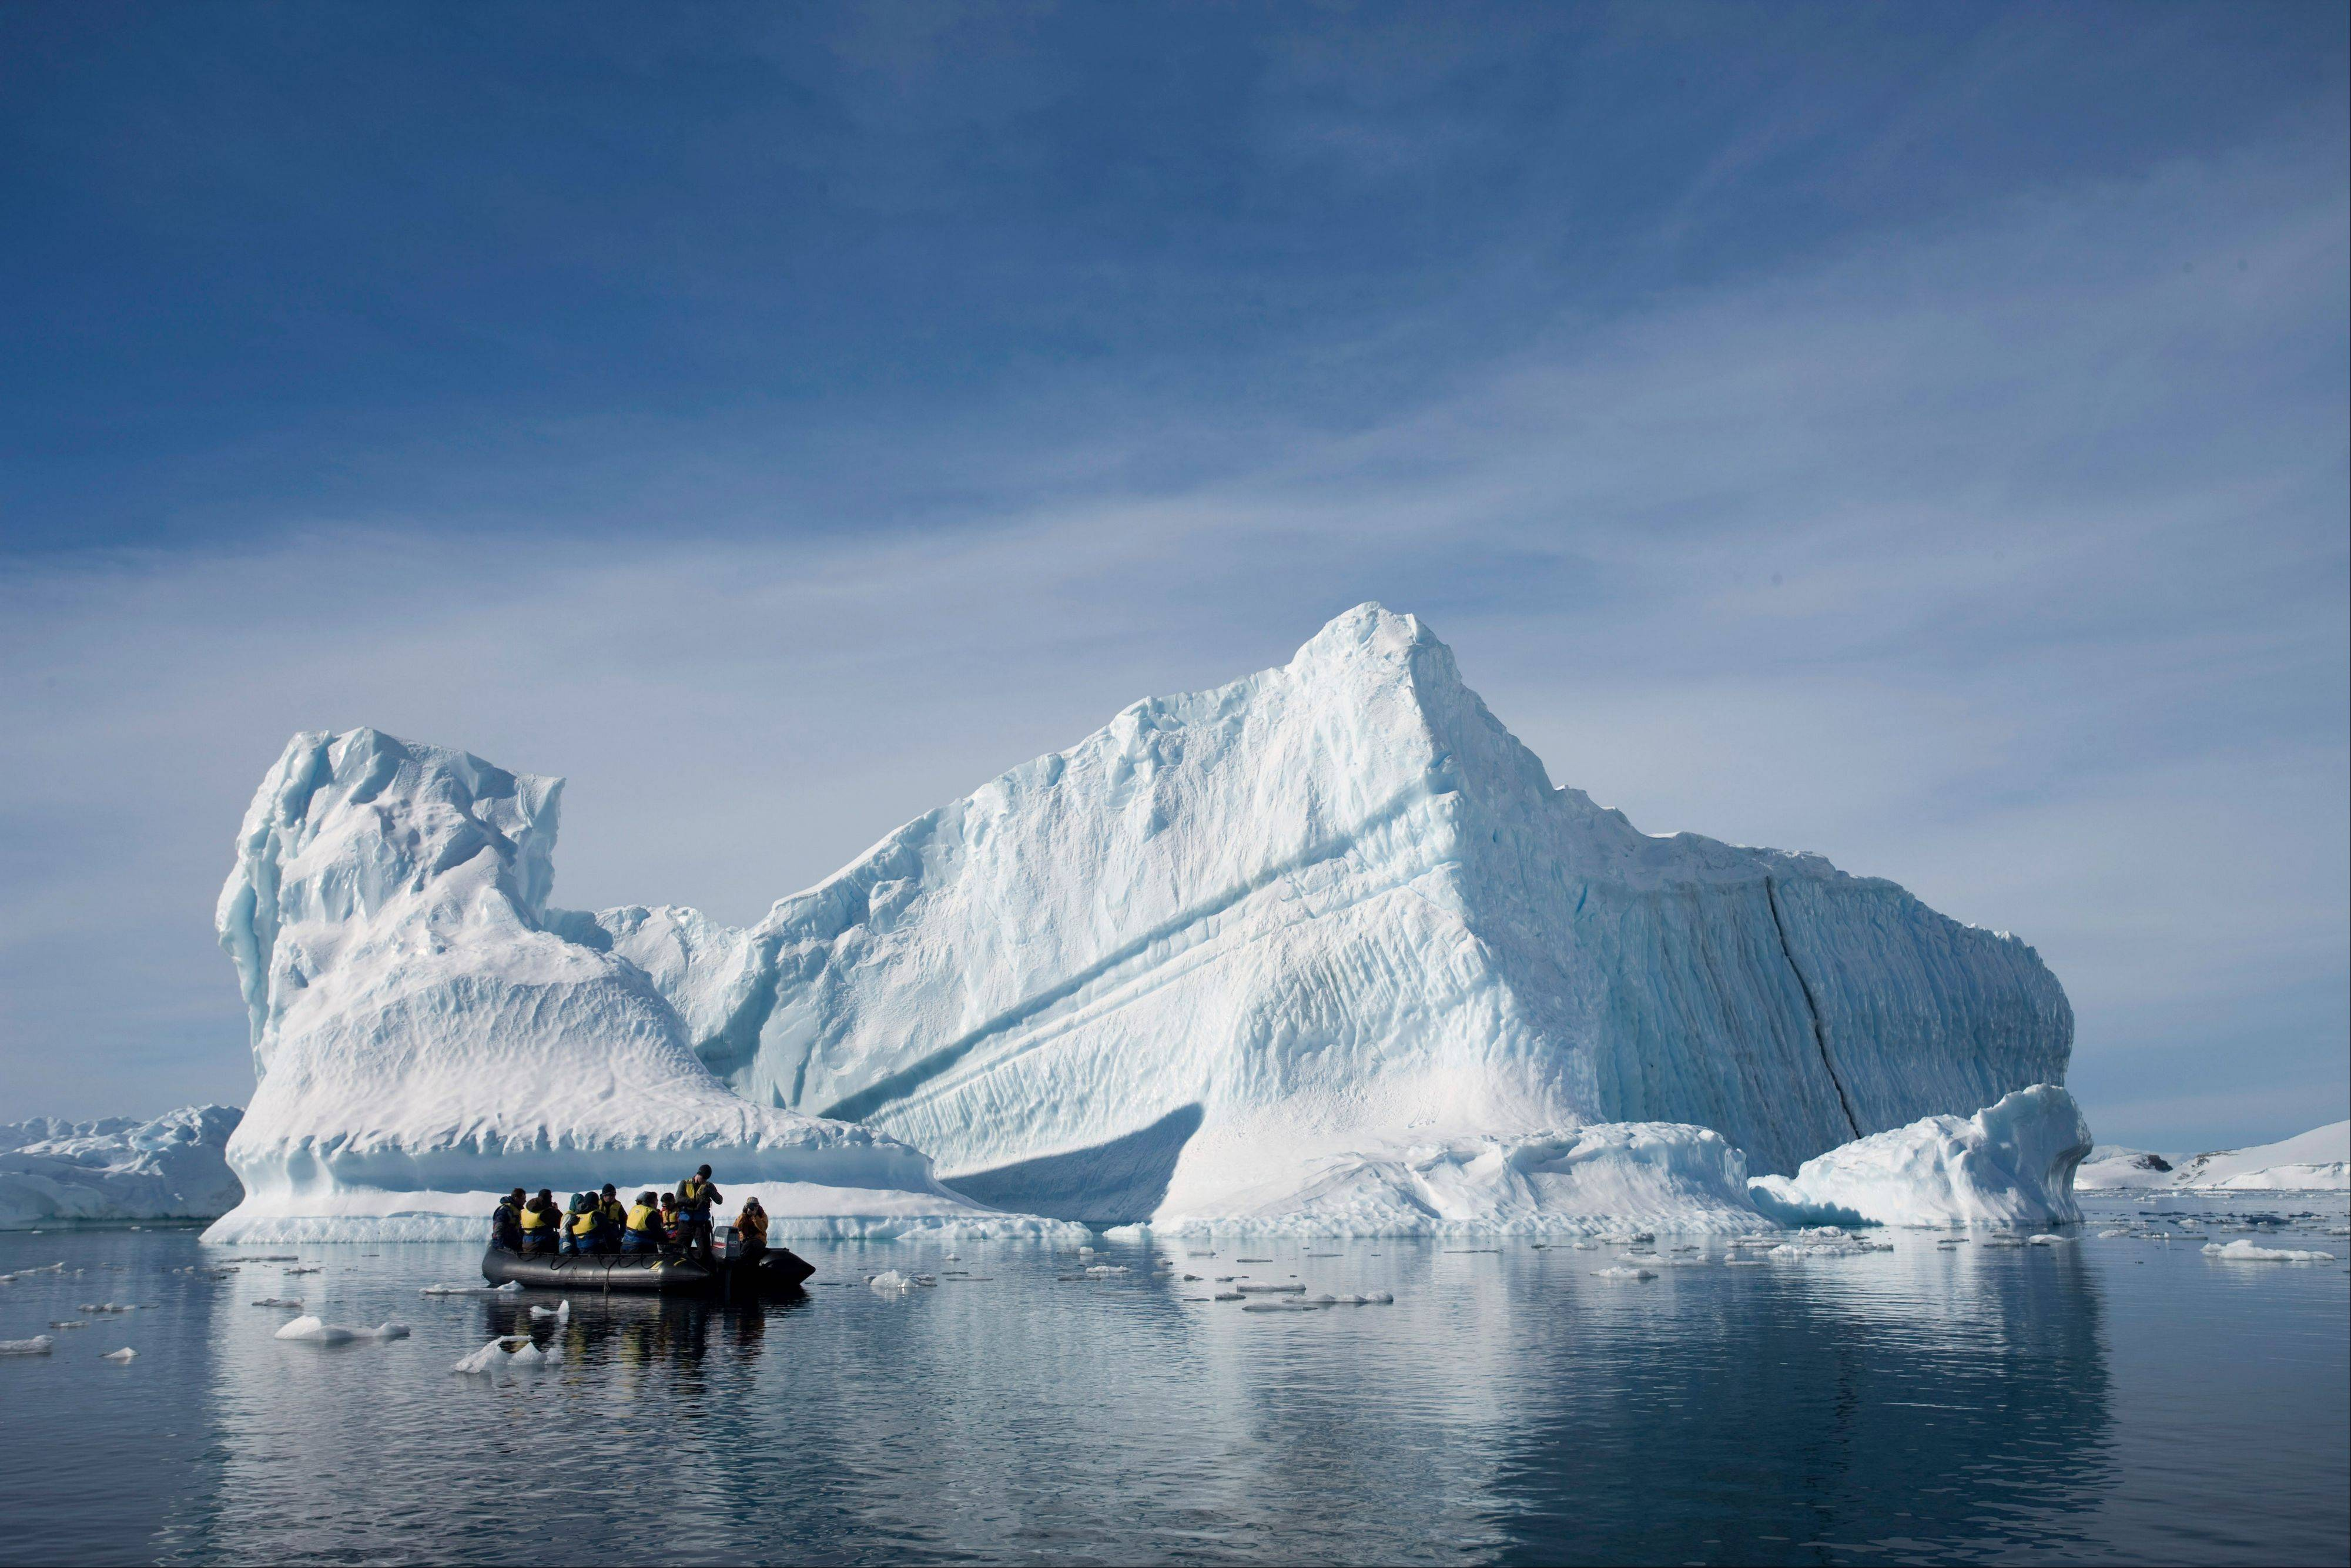 Associated Press/Dec. 1, 2009An inflatable boat carries tourists past an iceberg along the Antarctic Peninsula.